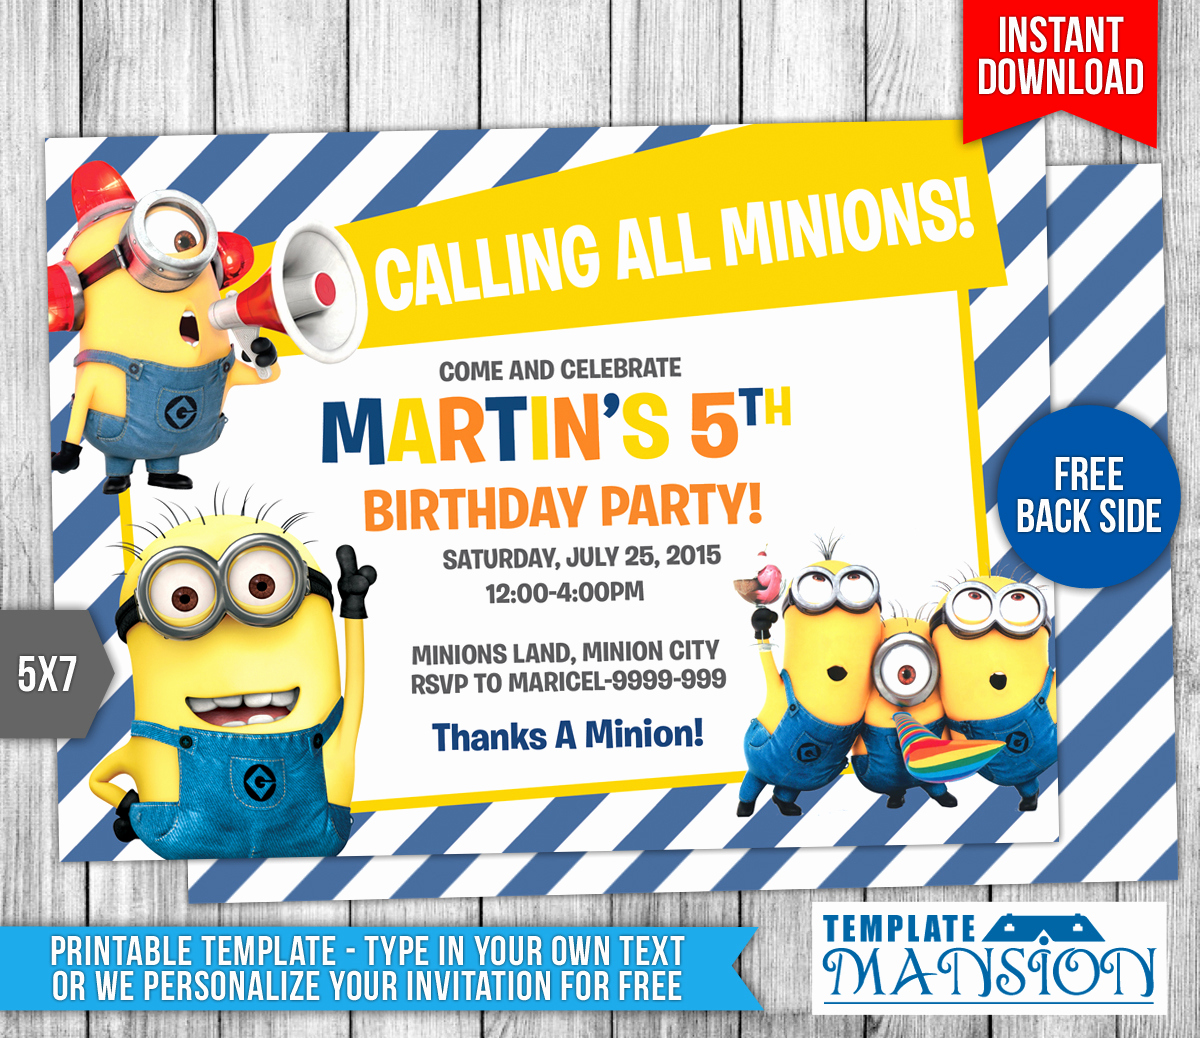 Minions Birthday Invitation Templates Fresh Minions Birthday Invitation 7 by Templatemansion On